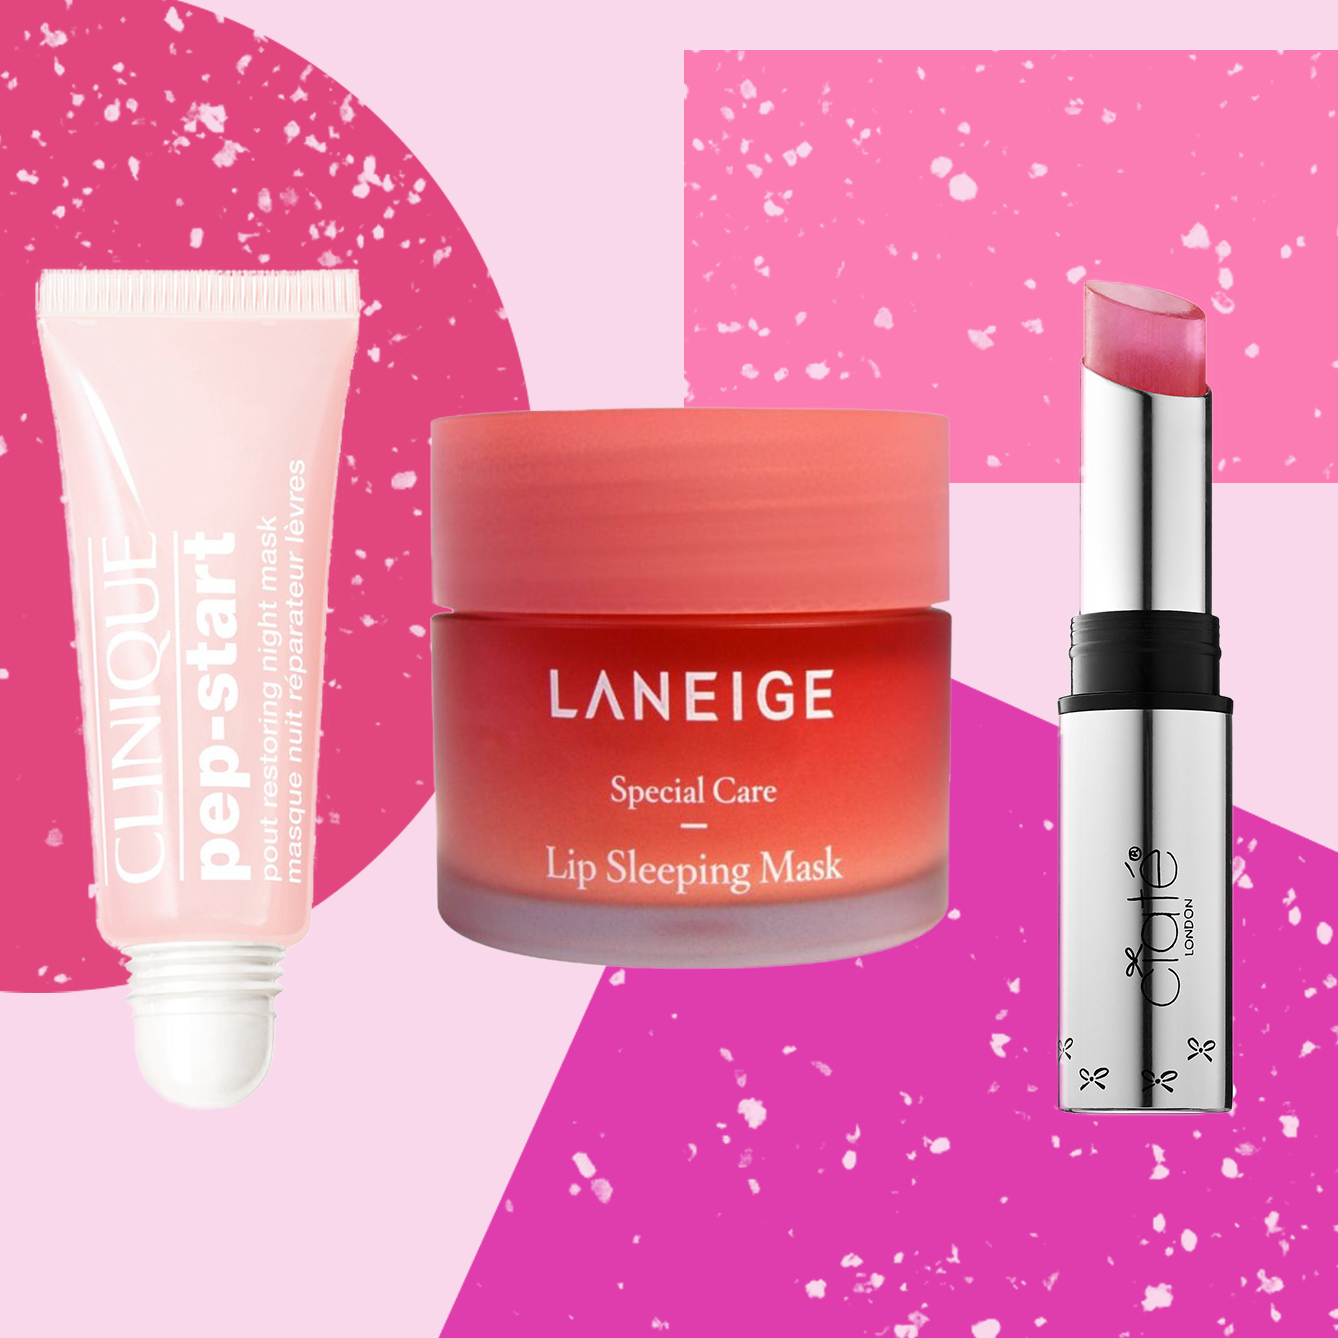 Trending: Next Level Lip Care for the Perfect Pout